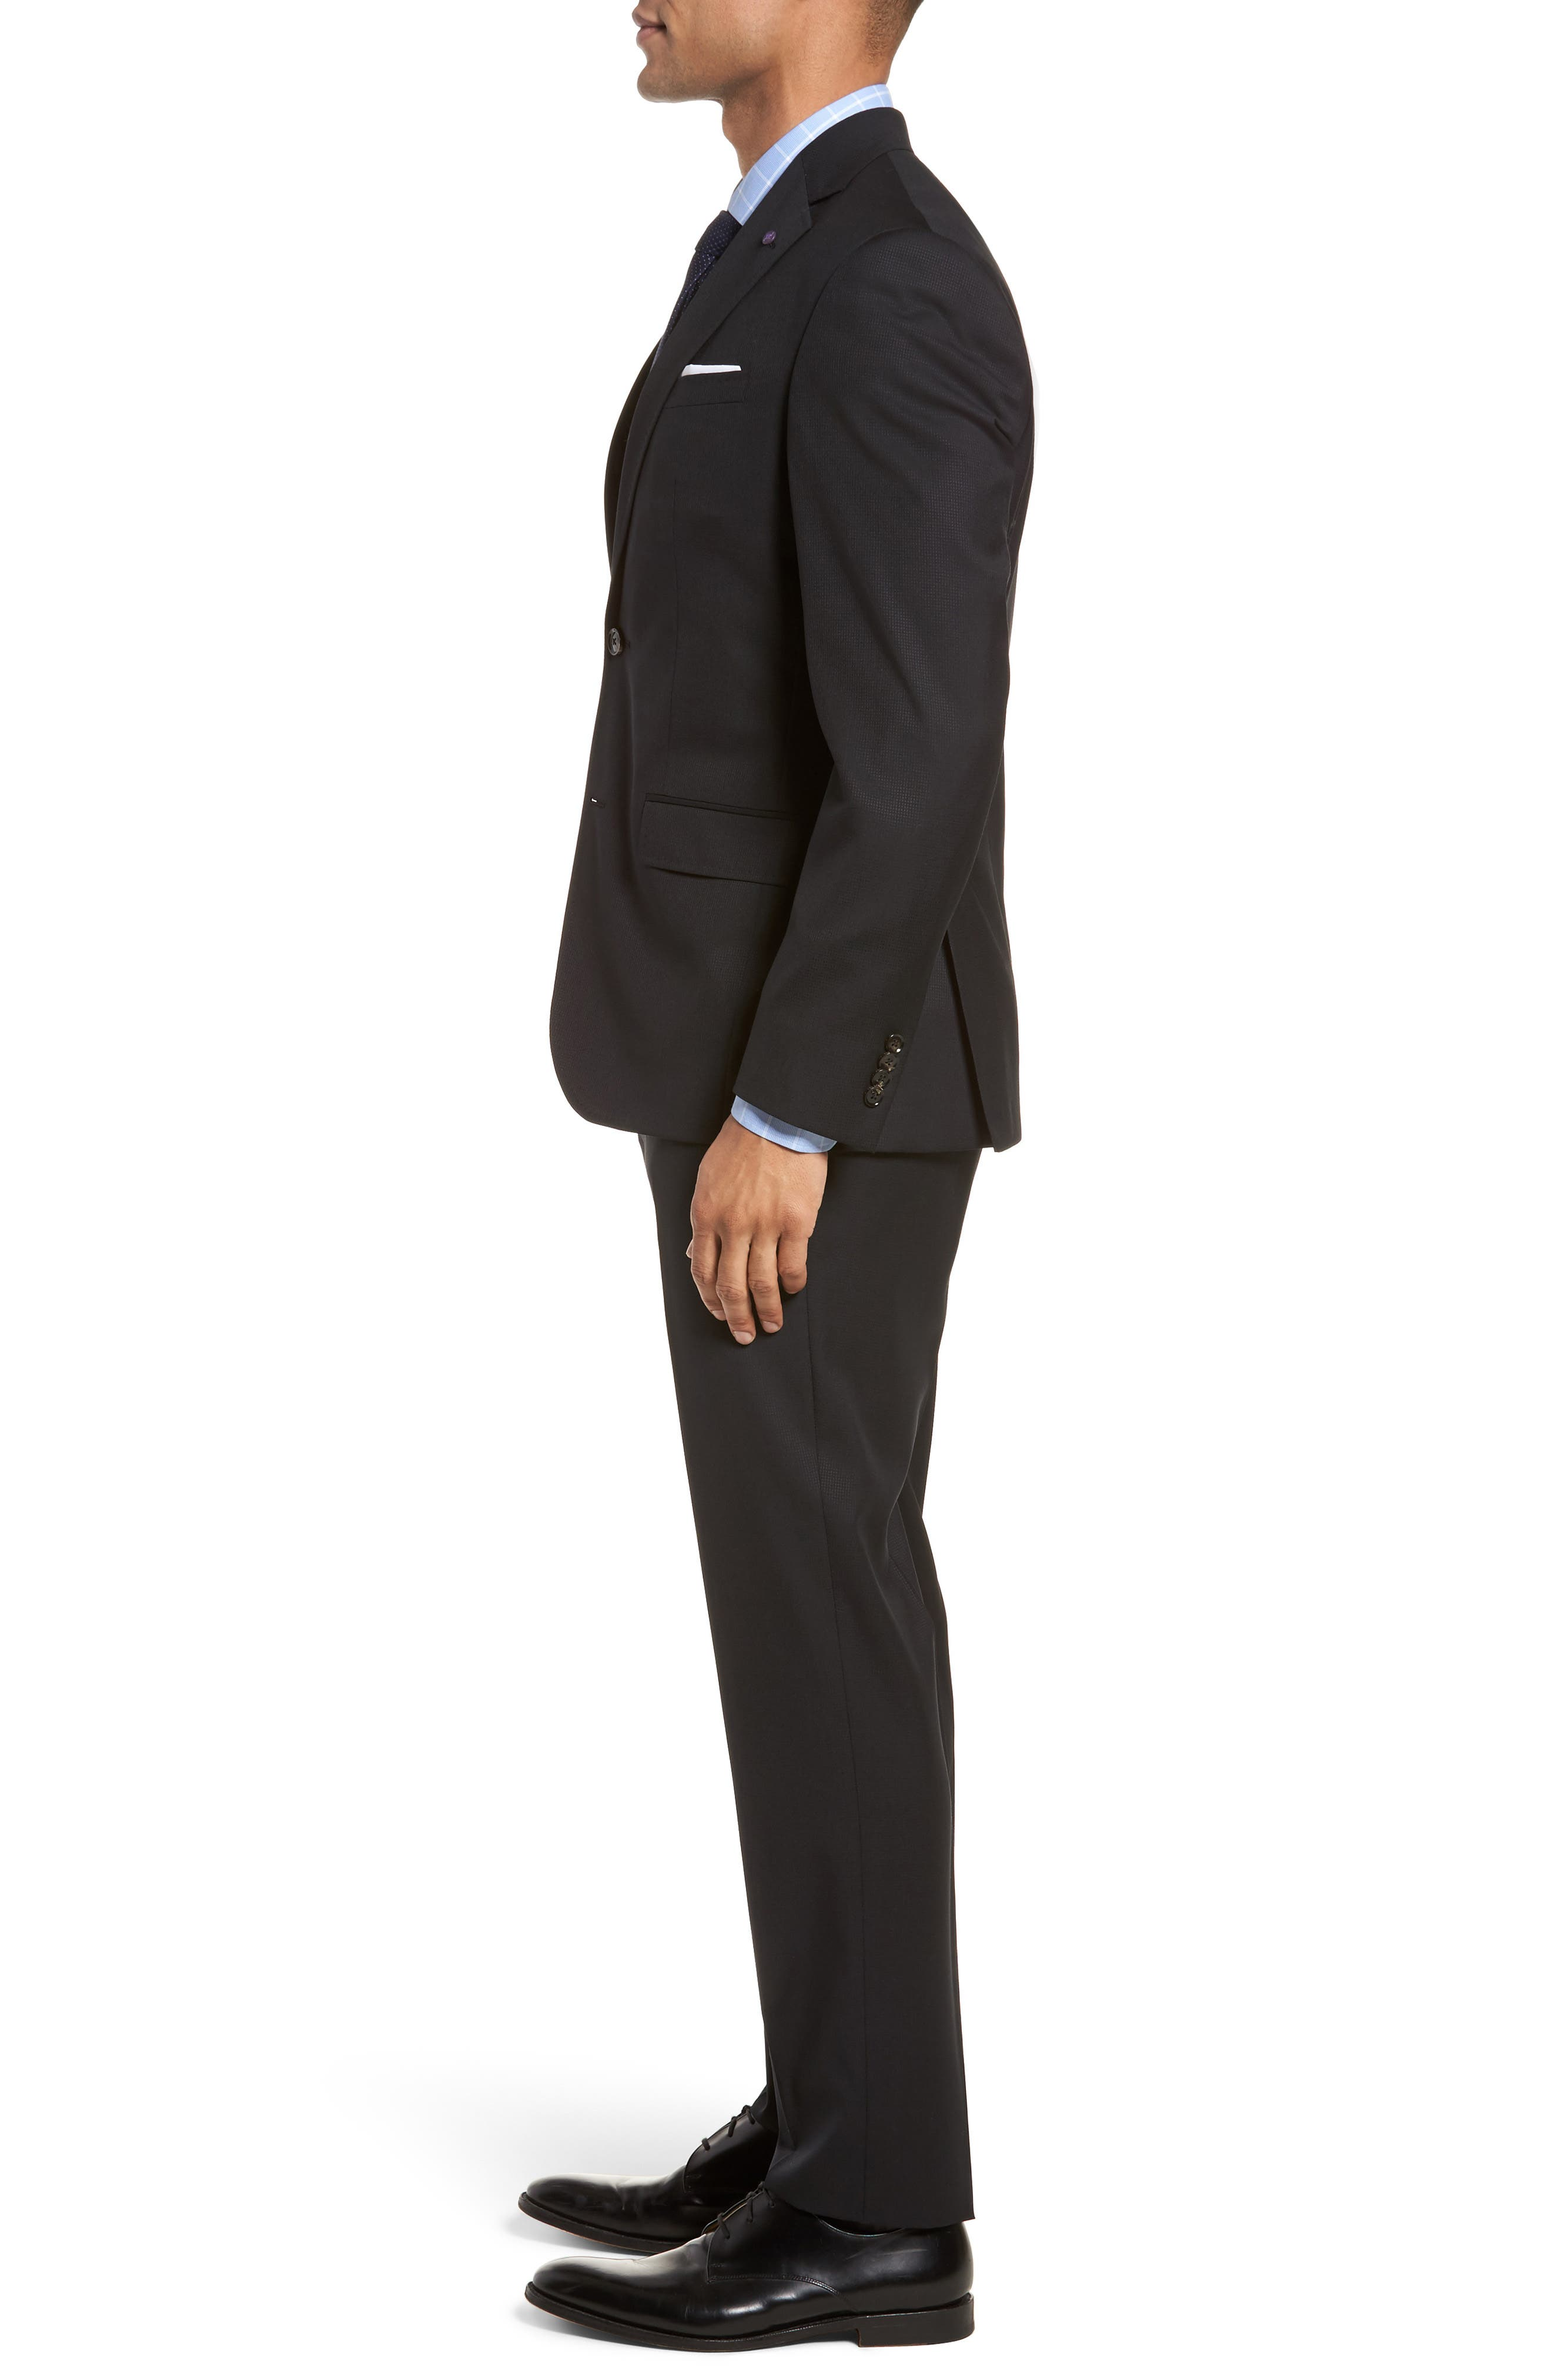 Roger Extra Slim Fit Solid Wool Suit,                             Alternate thumbnail 3, color,                             Black